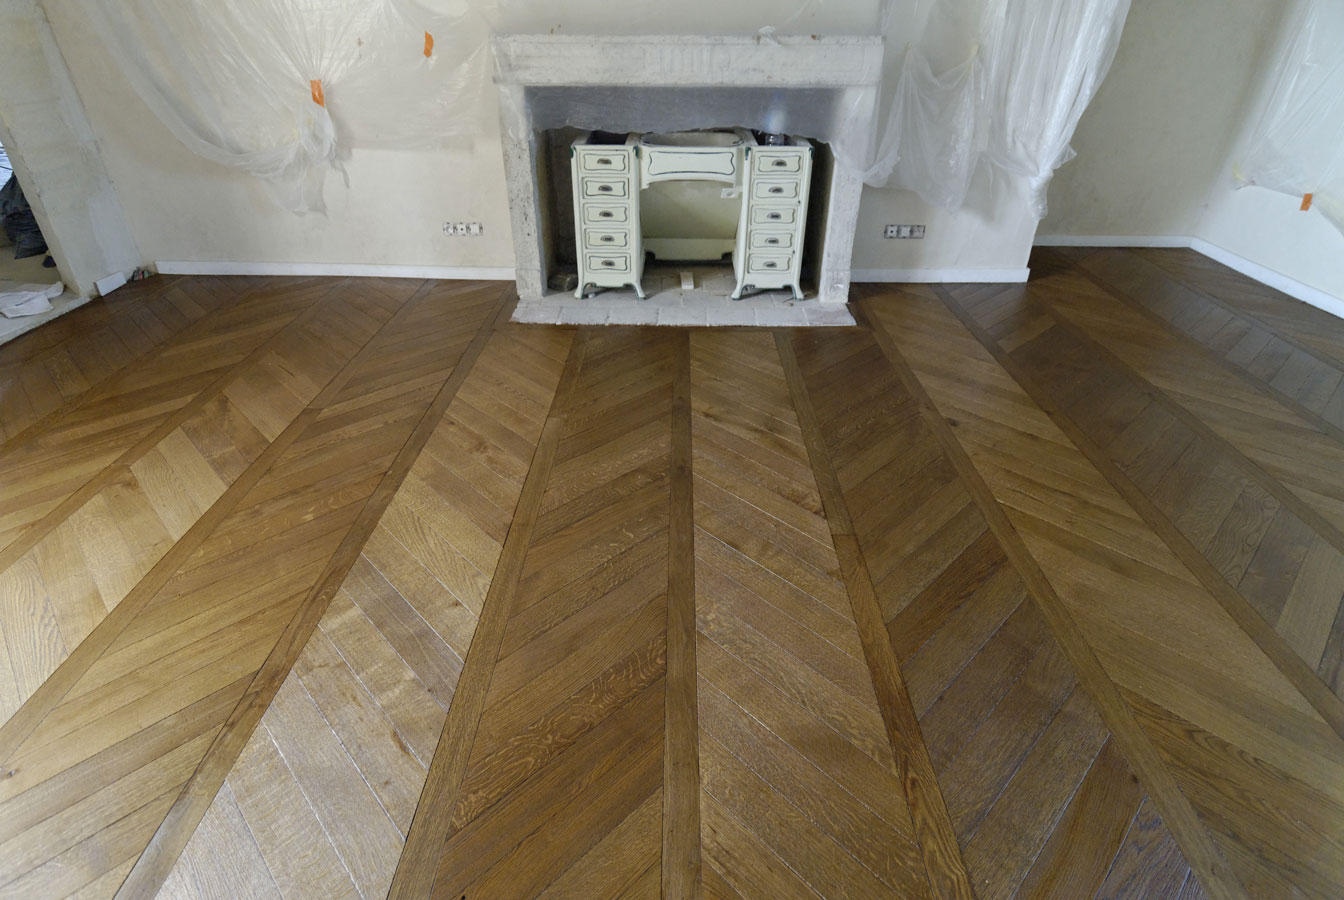 Overview Of The Parquet Floor Parquets De Tradition 19